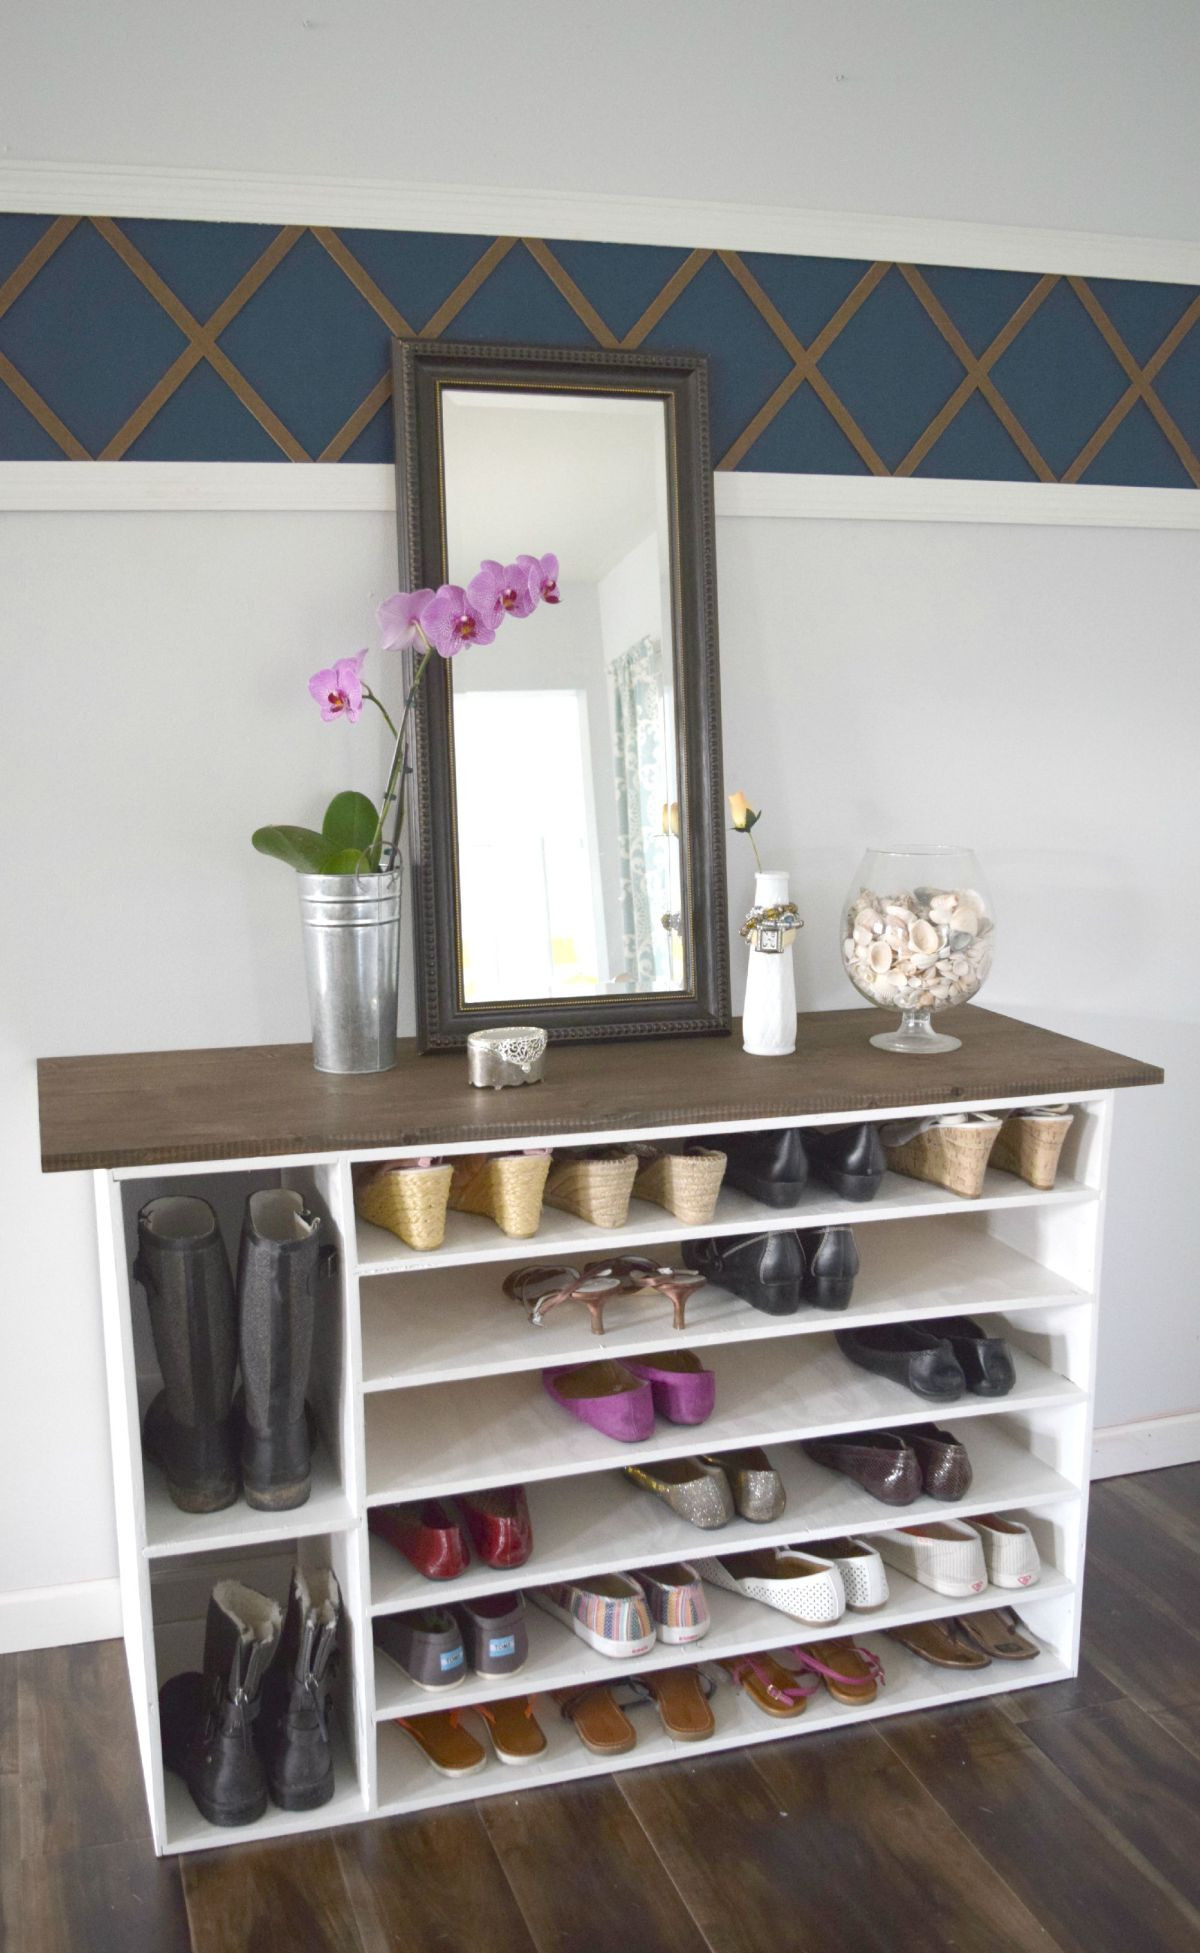 Best ideas about DIY Shoe Storage . Save or Pin Stylish DIY Shoe Rack Perfect for Any Room Now.